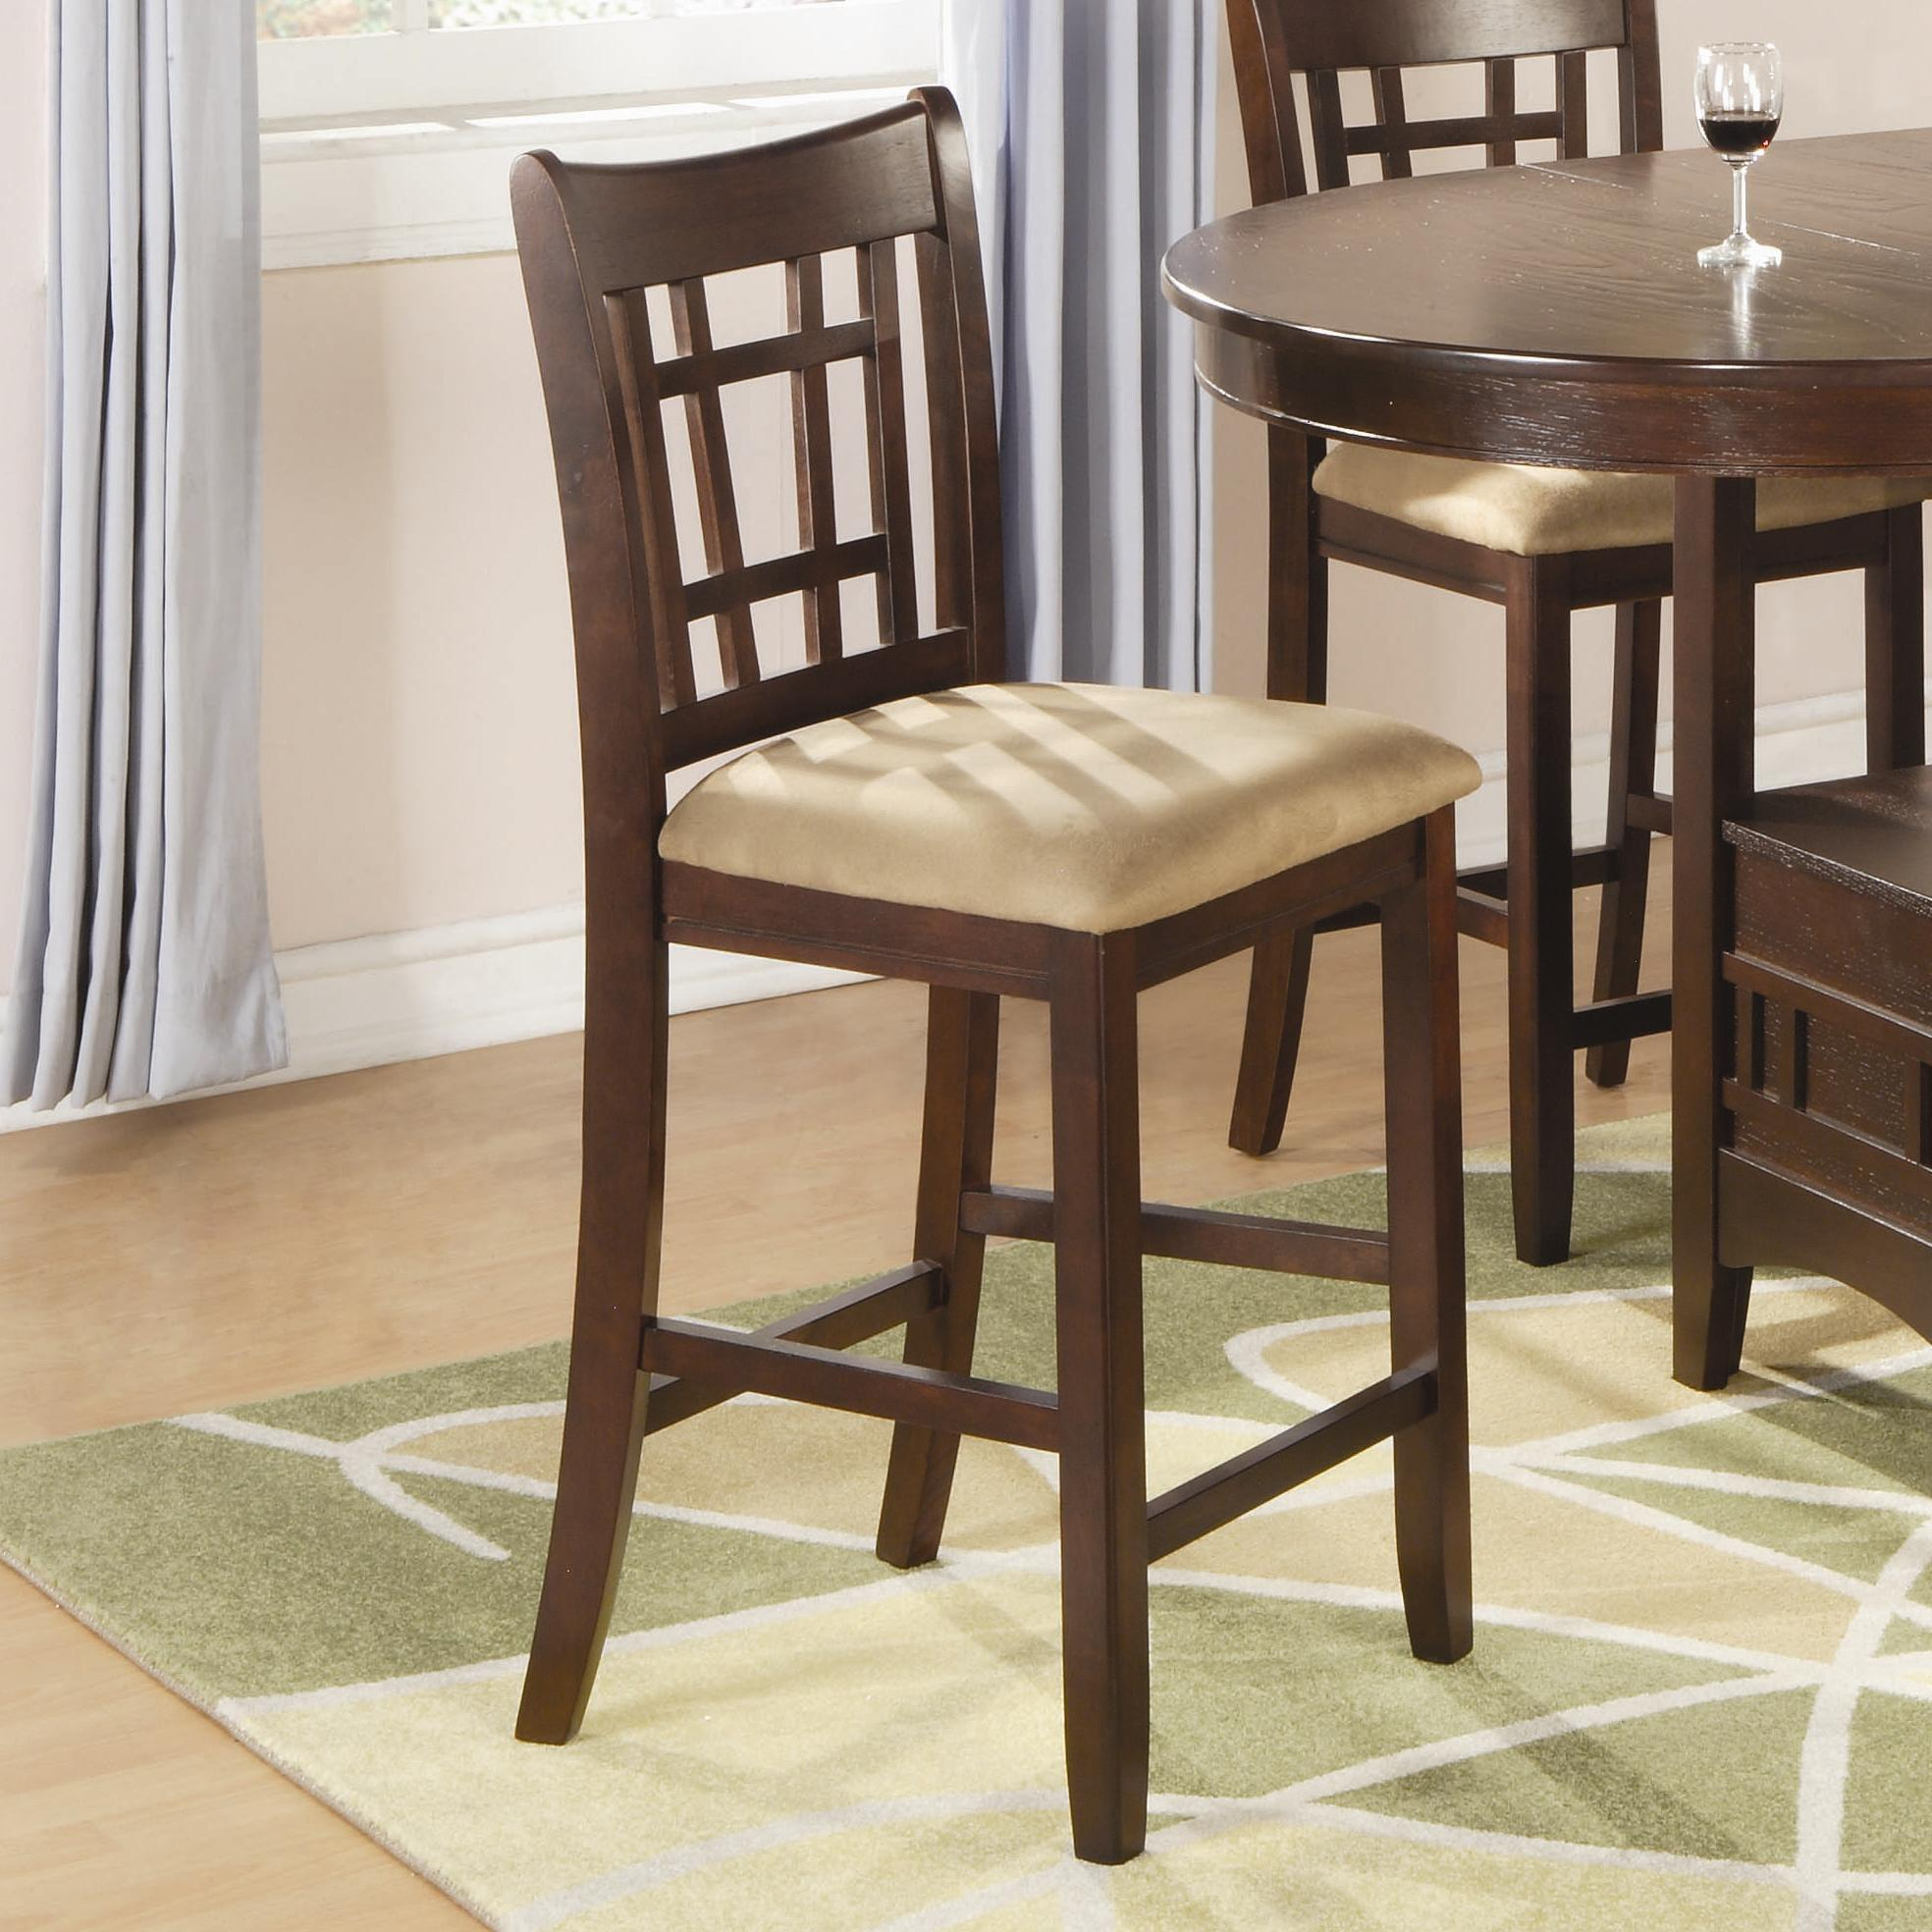 Lavon 24 Inch Bar Stool by Coaster at Northeast Factory Direct